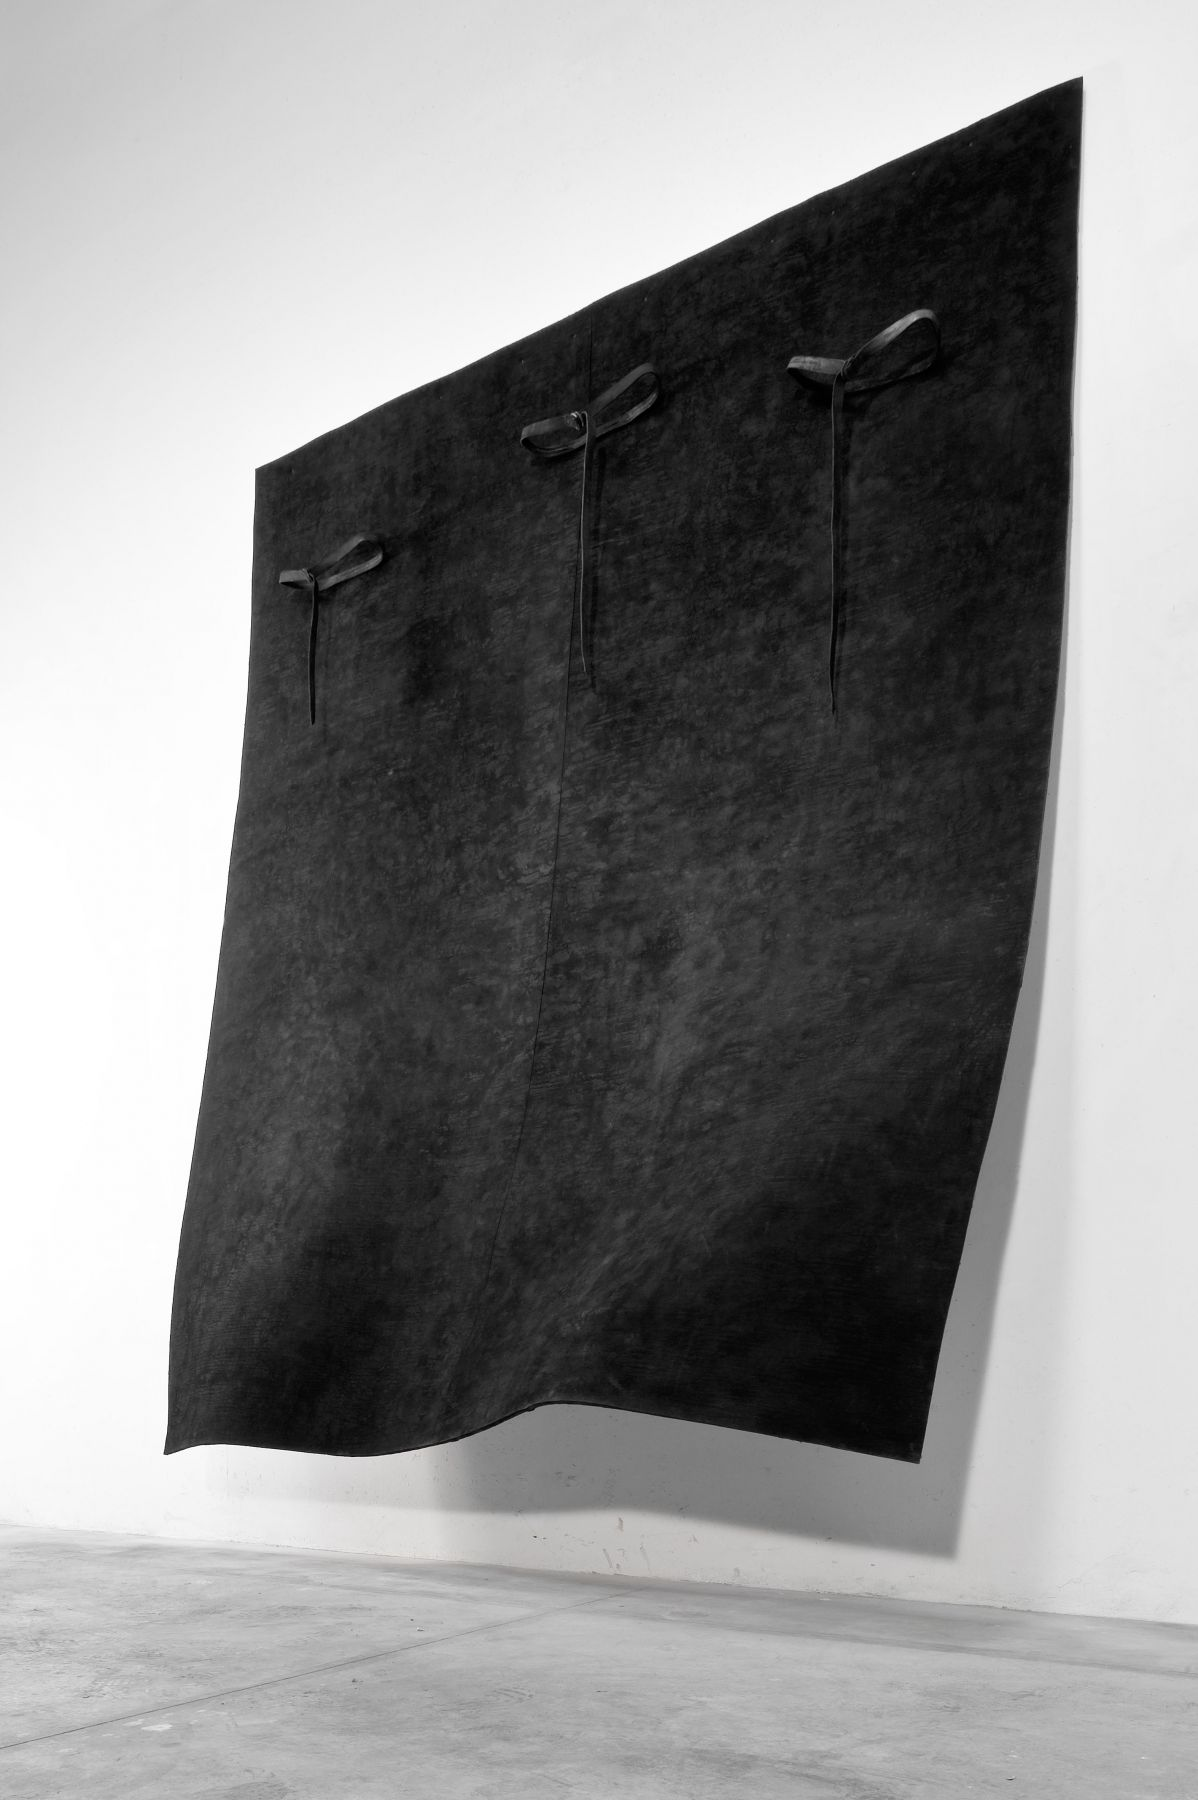 black painting by pier paolo calzolari